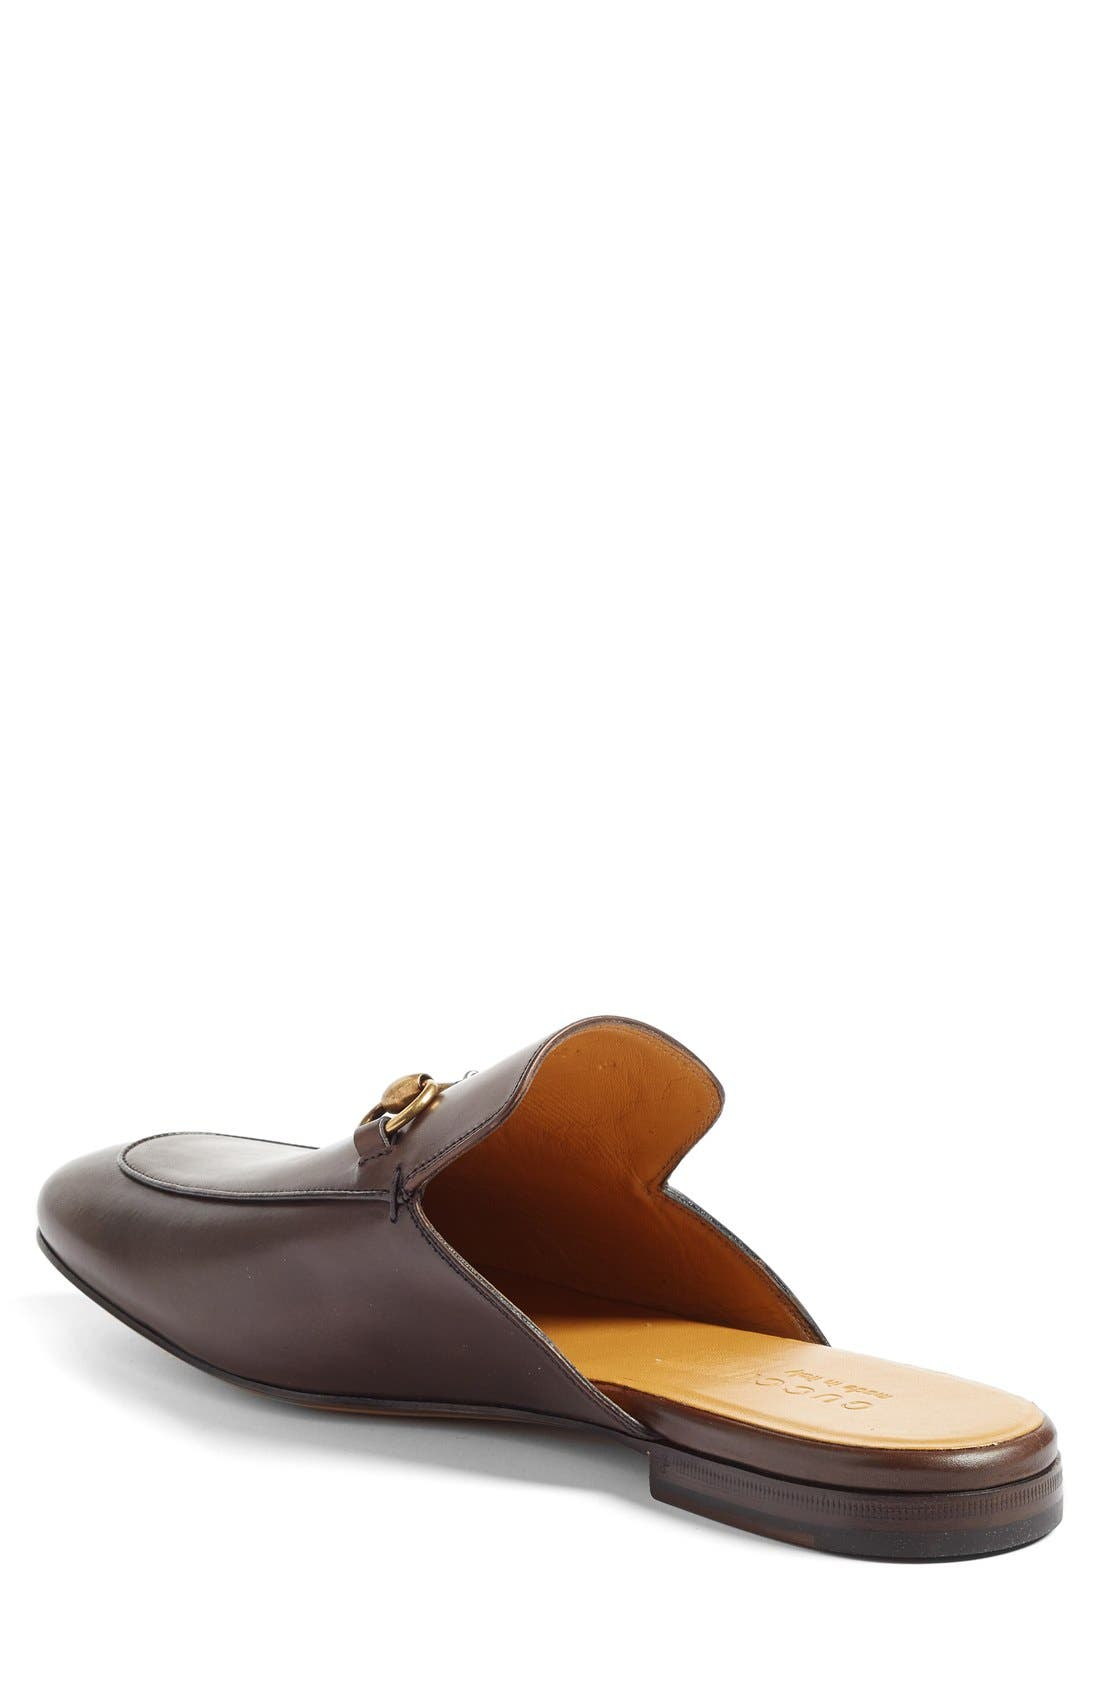 Straw Princetown Slipper,                             Alternate thumbnail 2, color,                             Brown Leather